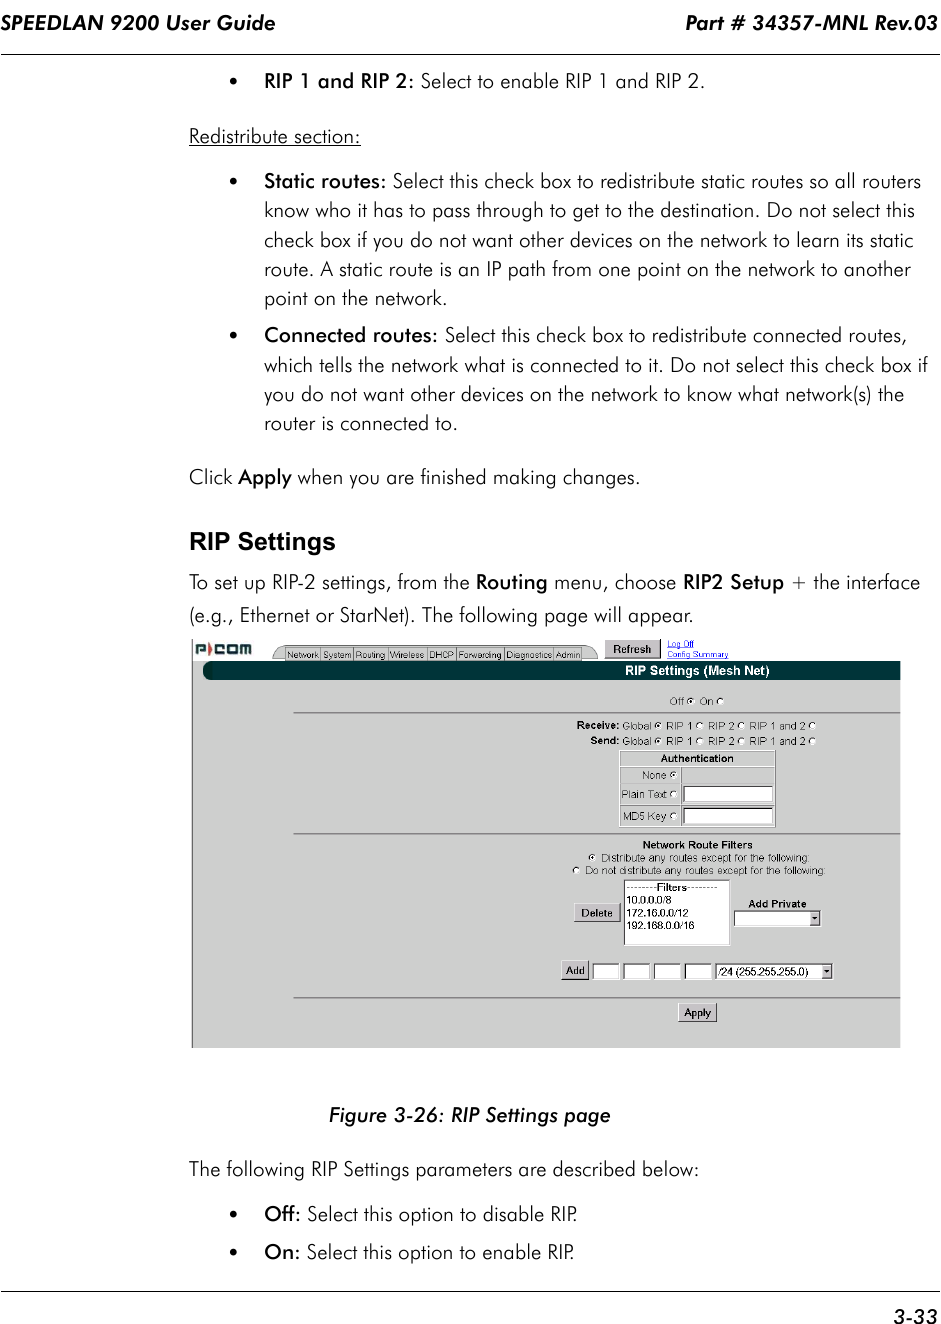 SPEEDLAN 9200 User Guide                                                                    Part # 34357-MNL Rev.03      3-33                                                                                                                                                              •RIP 1 and RIP 2: Select to enable RIP 1 and RIP 2.Redistribute section:•Static routes: Select this check box to redistribute static routes so all routers know who it has to pass through to get to the destination. Do not select this check box if you do not want other devices on the network to learn its static route. A static route is an IP path from one point on the network to another point on the network. •Connected routes: Select this check box to redistribute connected routes, which tells the network what is connected to it. Do not select this check box if you do not want other devices on the network to know what network(s) the router is connected to.Click Apply when you are finished making changes. RIP SettingsTo set up RIP-2 settings, from the Routing menu, choose RIP2 Setup + the interface (e.g., Ethernet or StarNet). The following page will appear.Figure 3-26: RIP Settings pageThe following RIP Settings parameters are described below:•Off: Select this option to disable RIP.•On: Select this option to enable RIP.